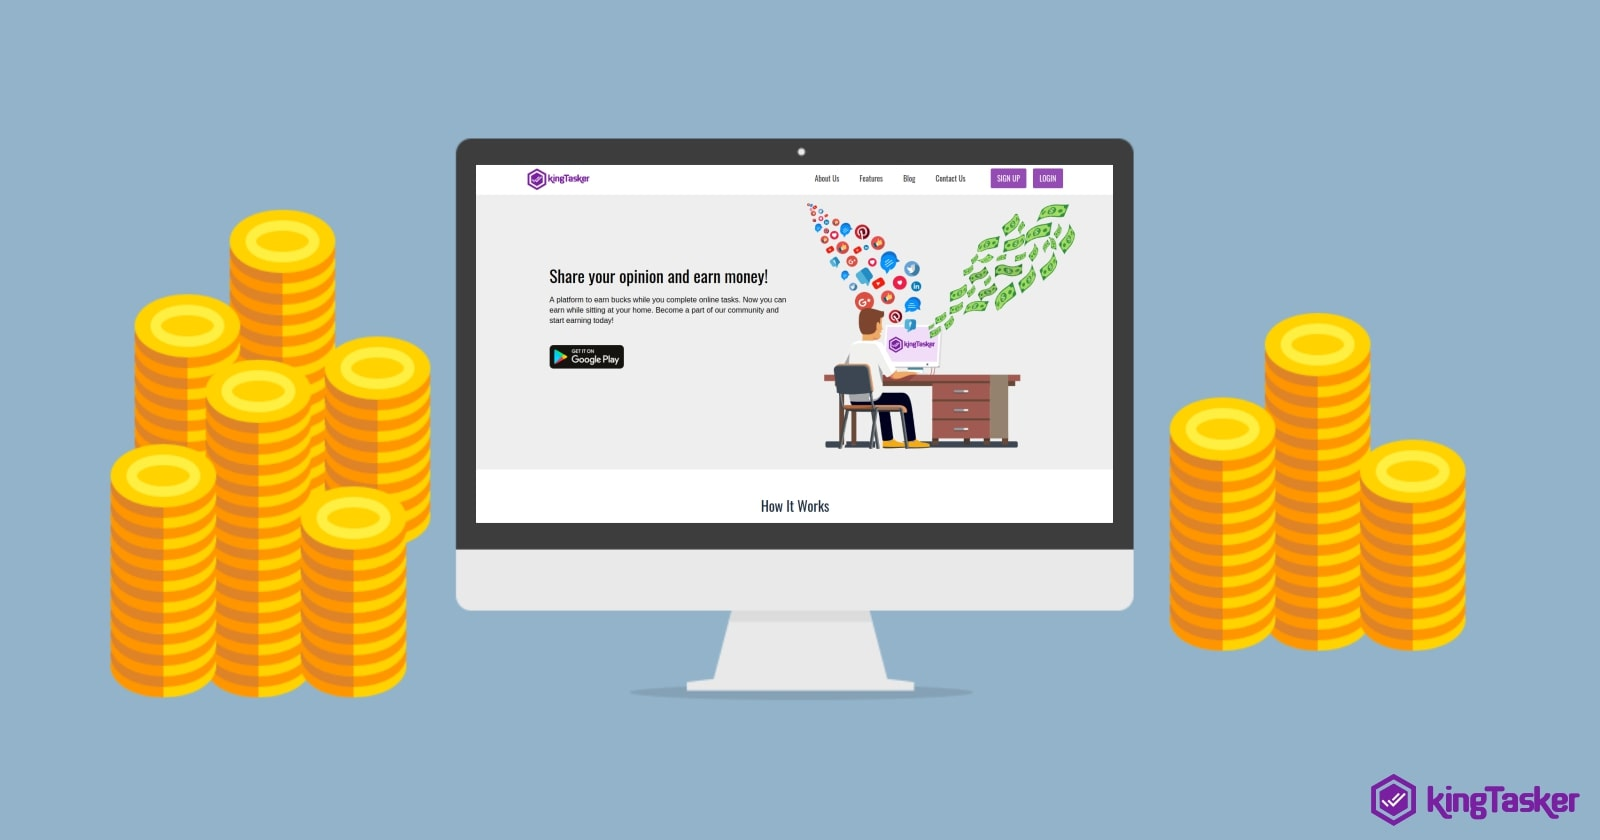 Why You Should Try Online Money Making Services?